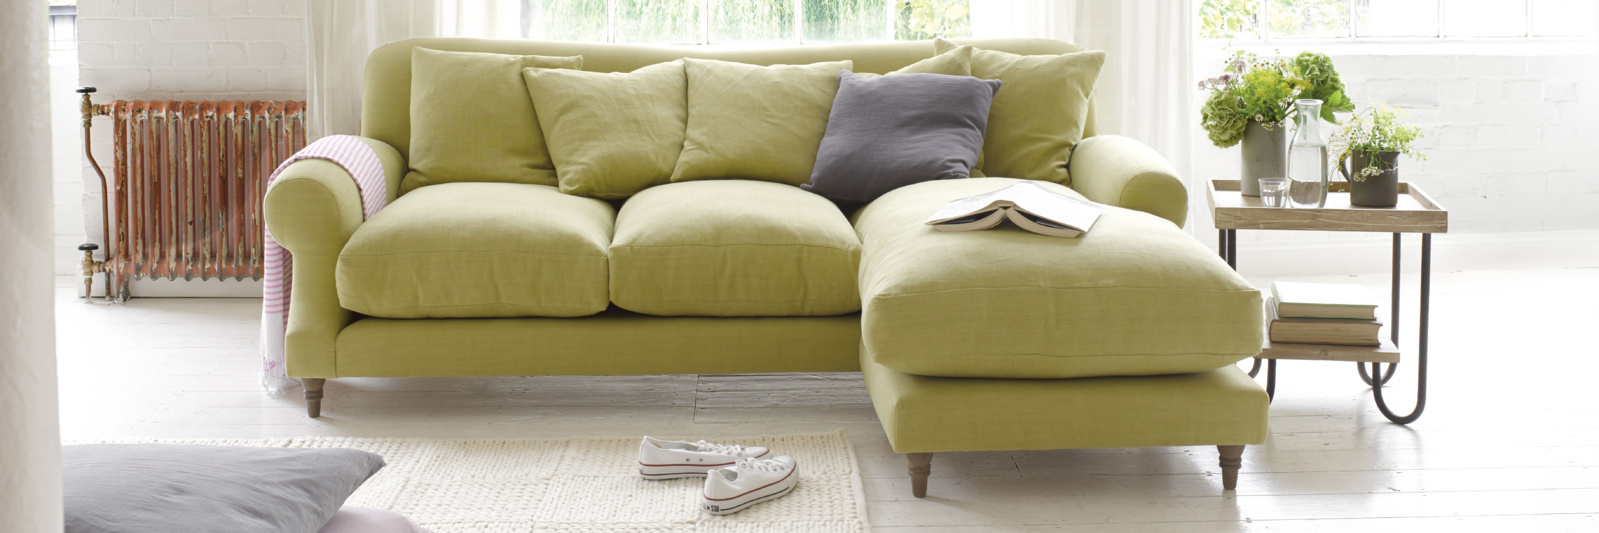 Green Corner Sofas | Order Free Fabric Swatches | Loaf